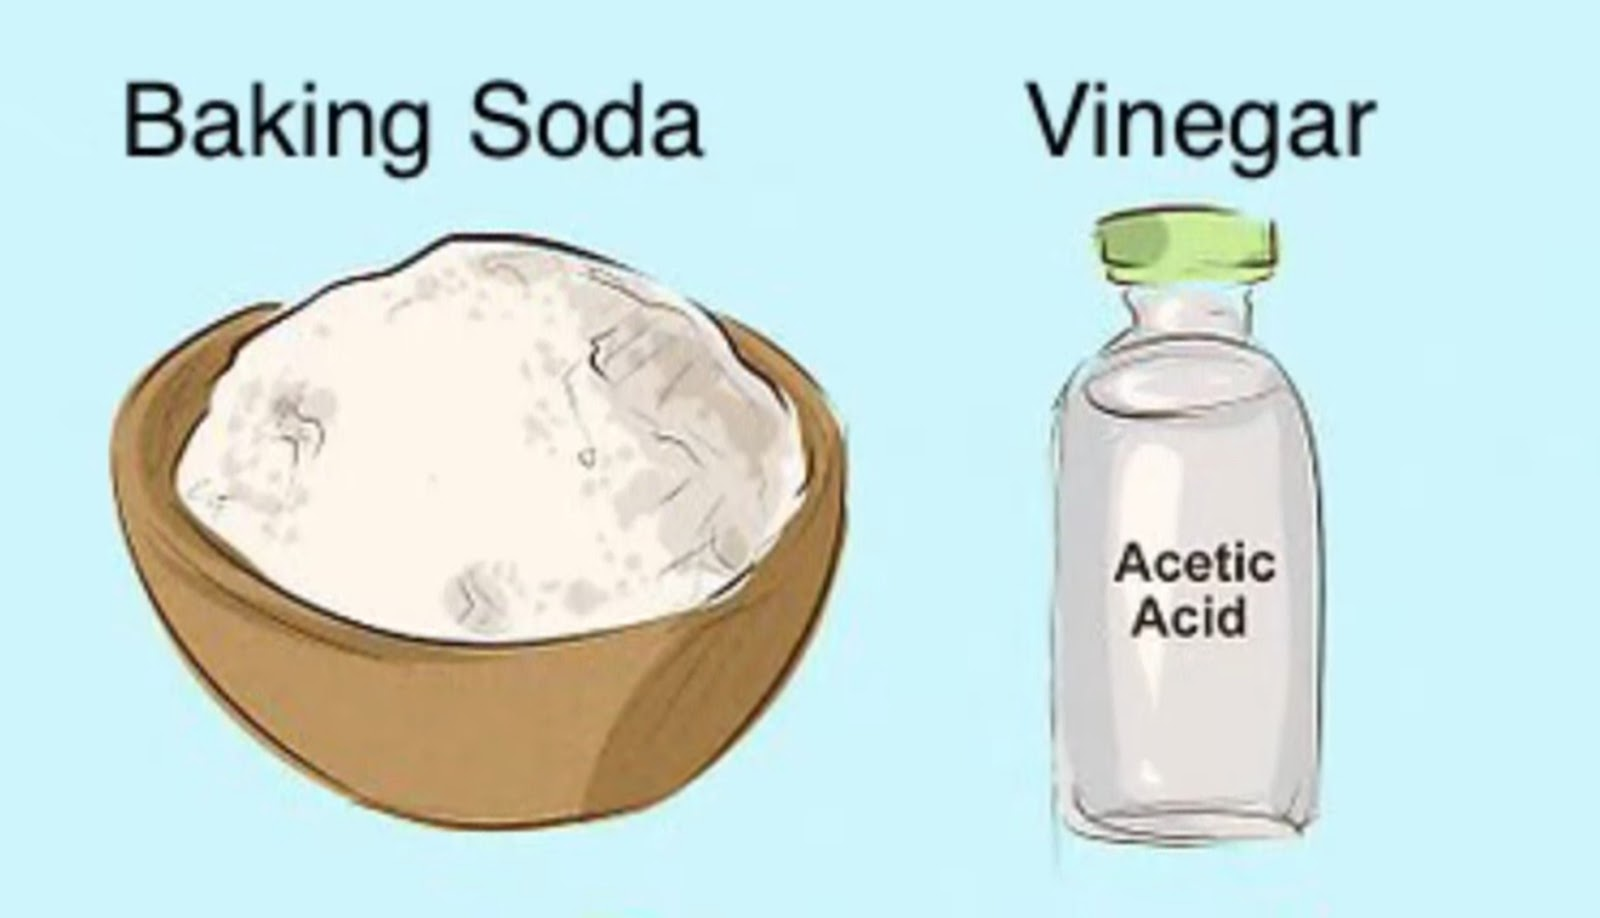 Baking Soda And Vinegar Chemical Reaction Explanation